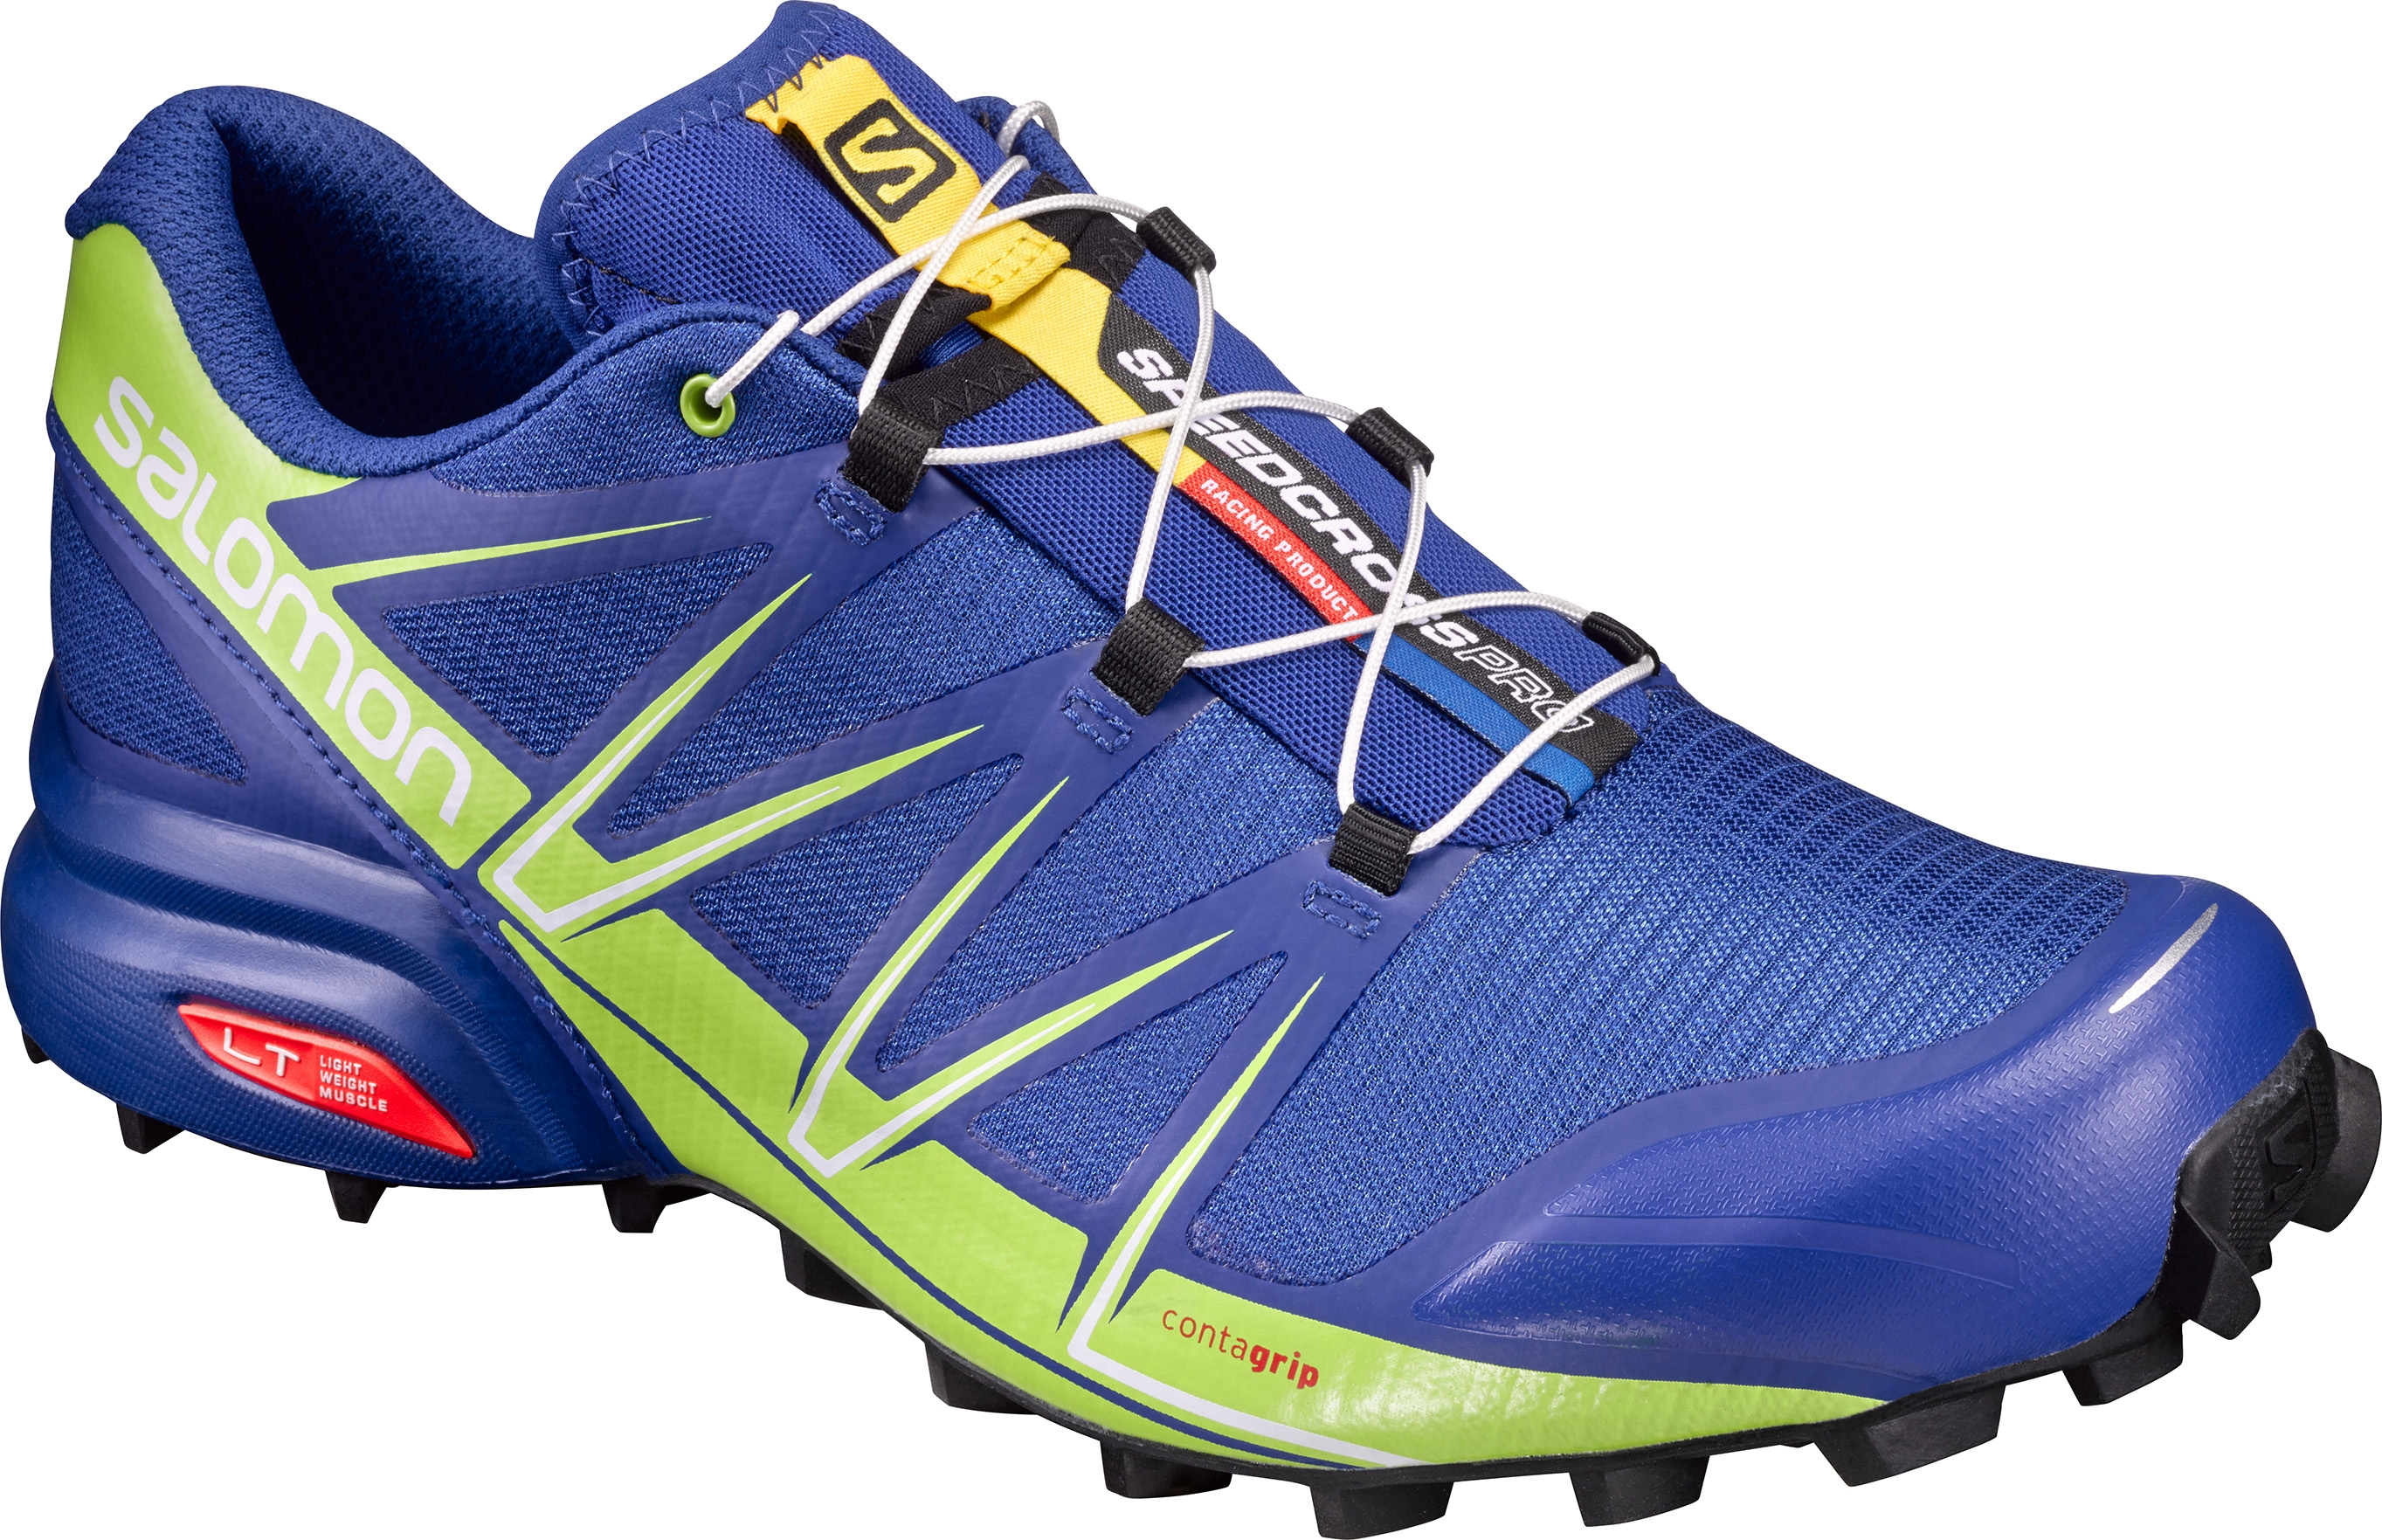 Salomon Speedcross Surf Pro Trail The Green Chaussures Weblime WYEH92DI